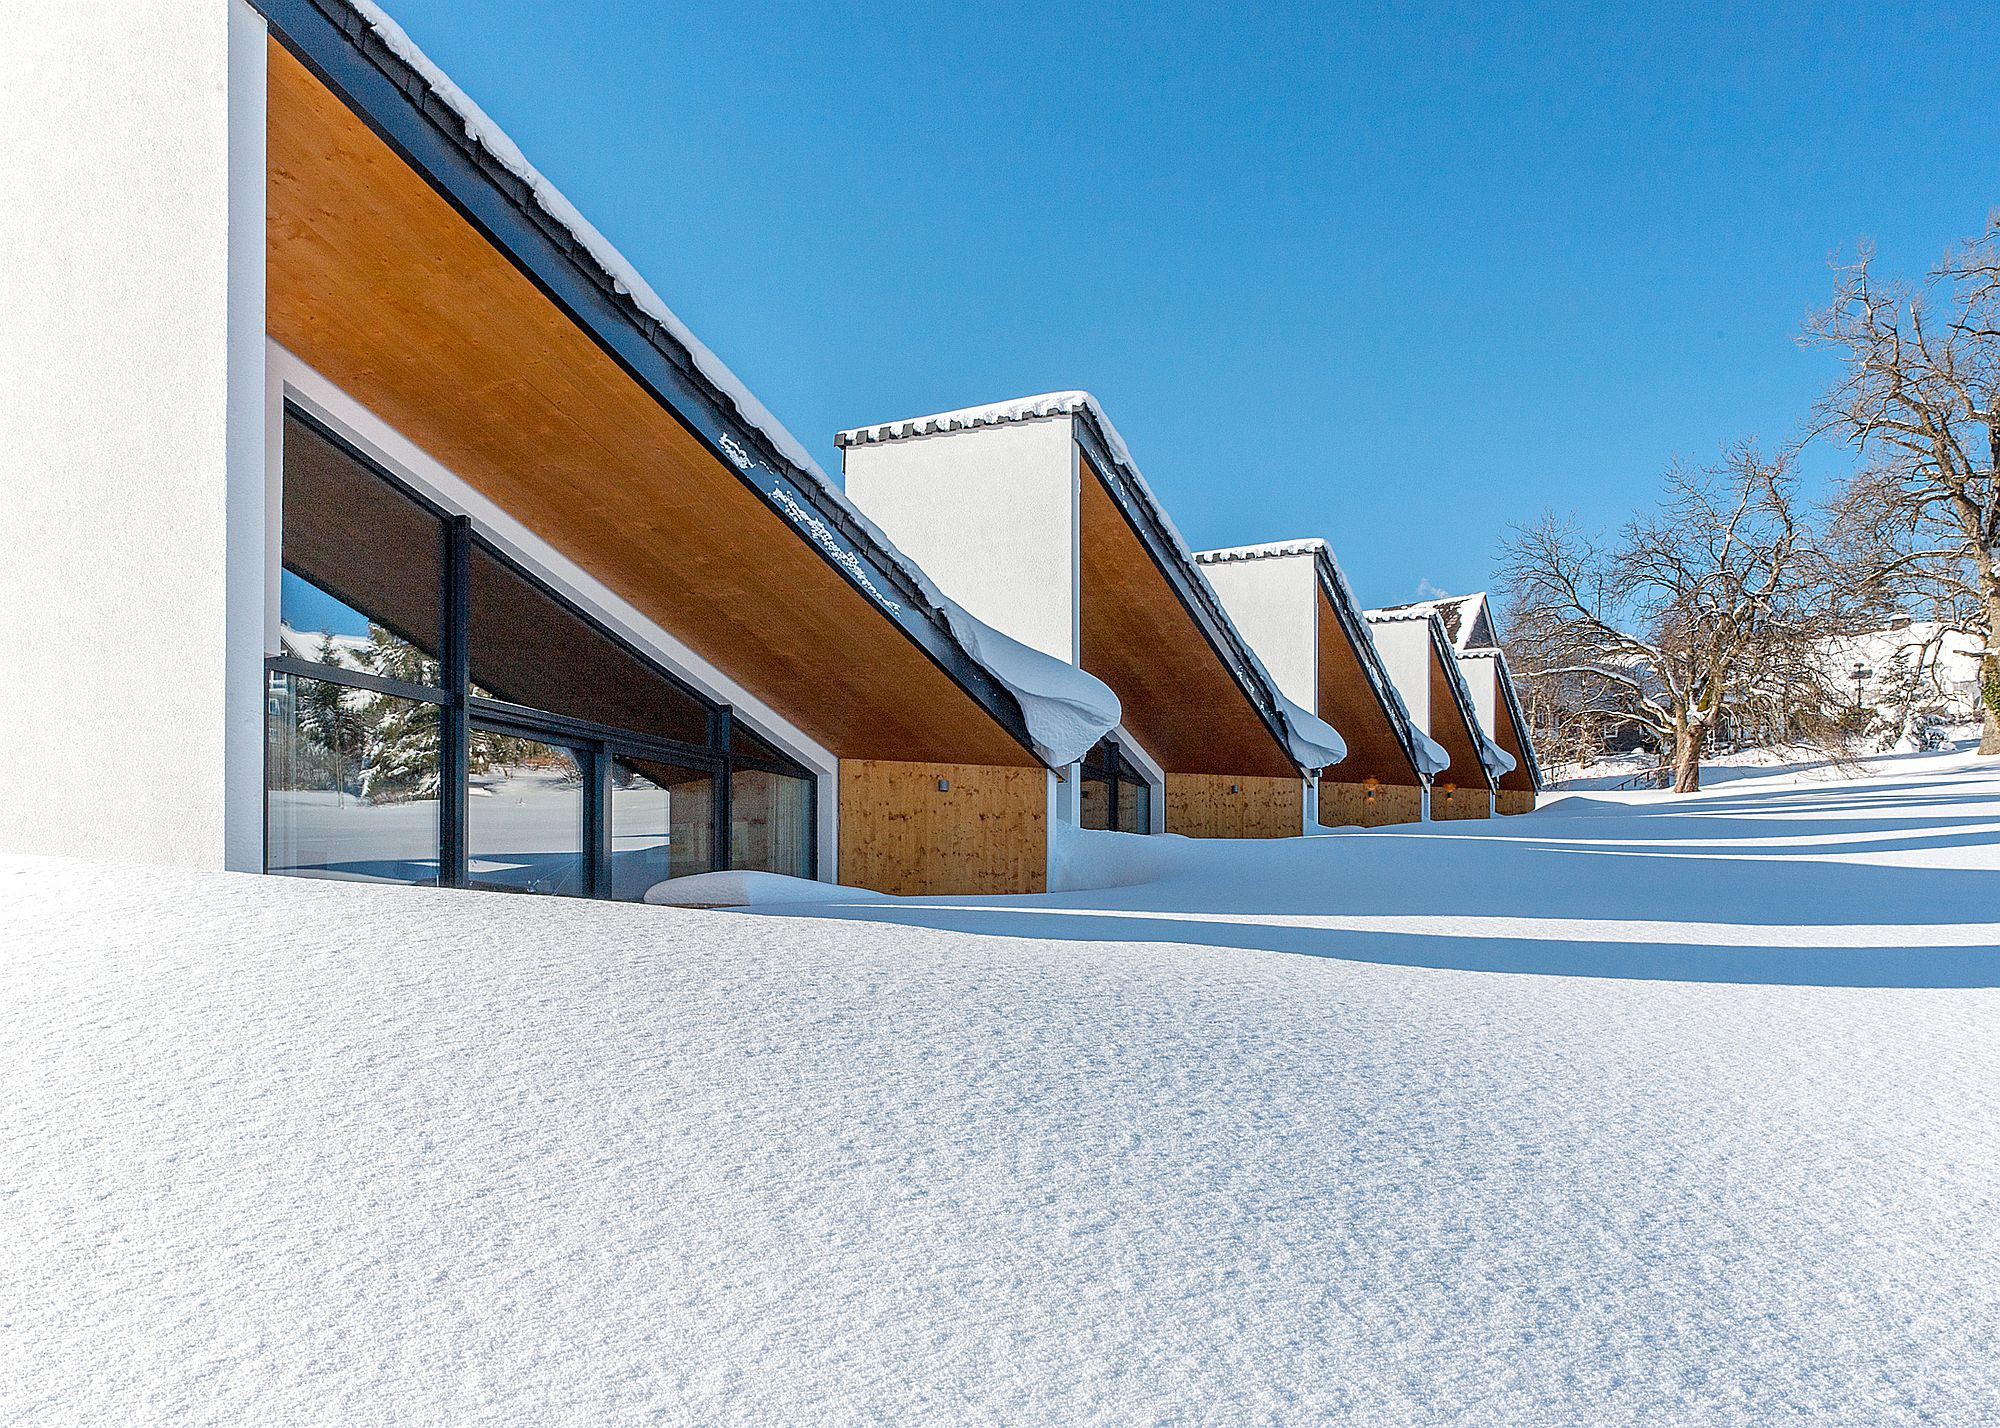 Gorgeous, snow-covered landscape around the villa along with its unique silhouette